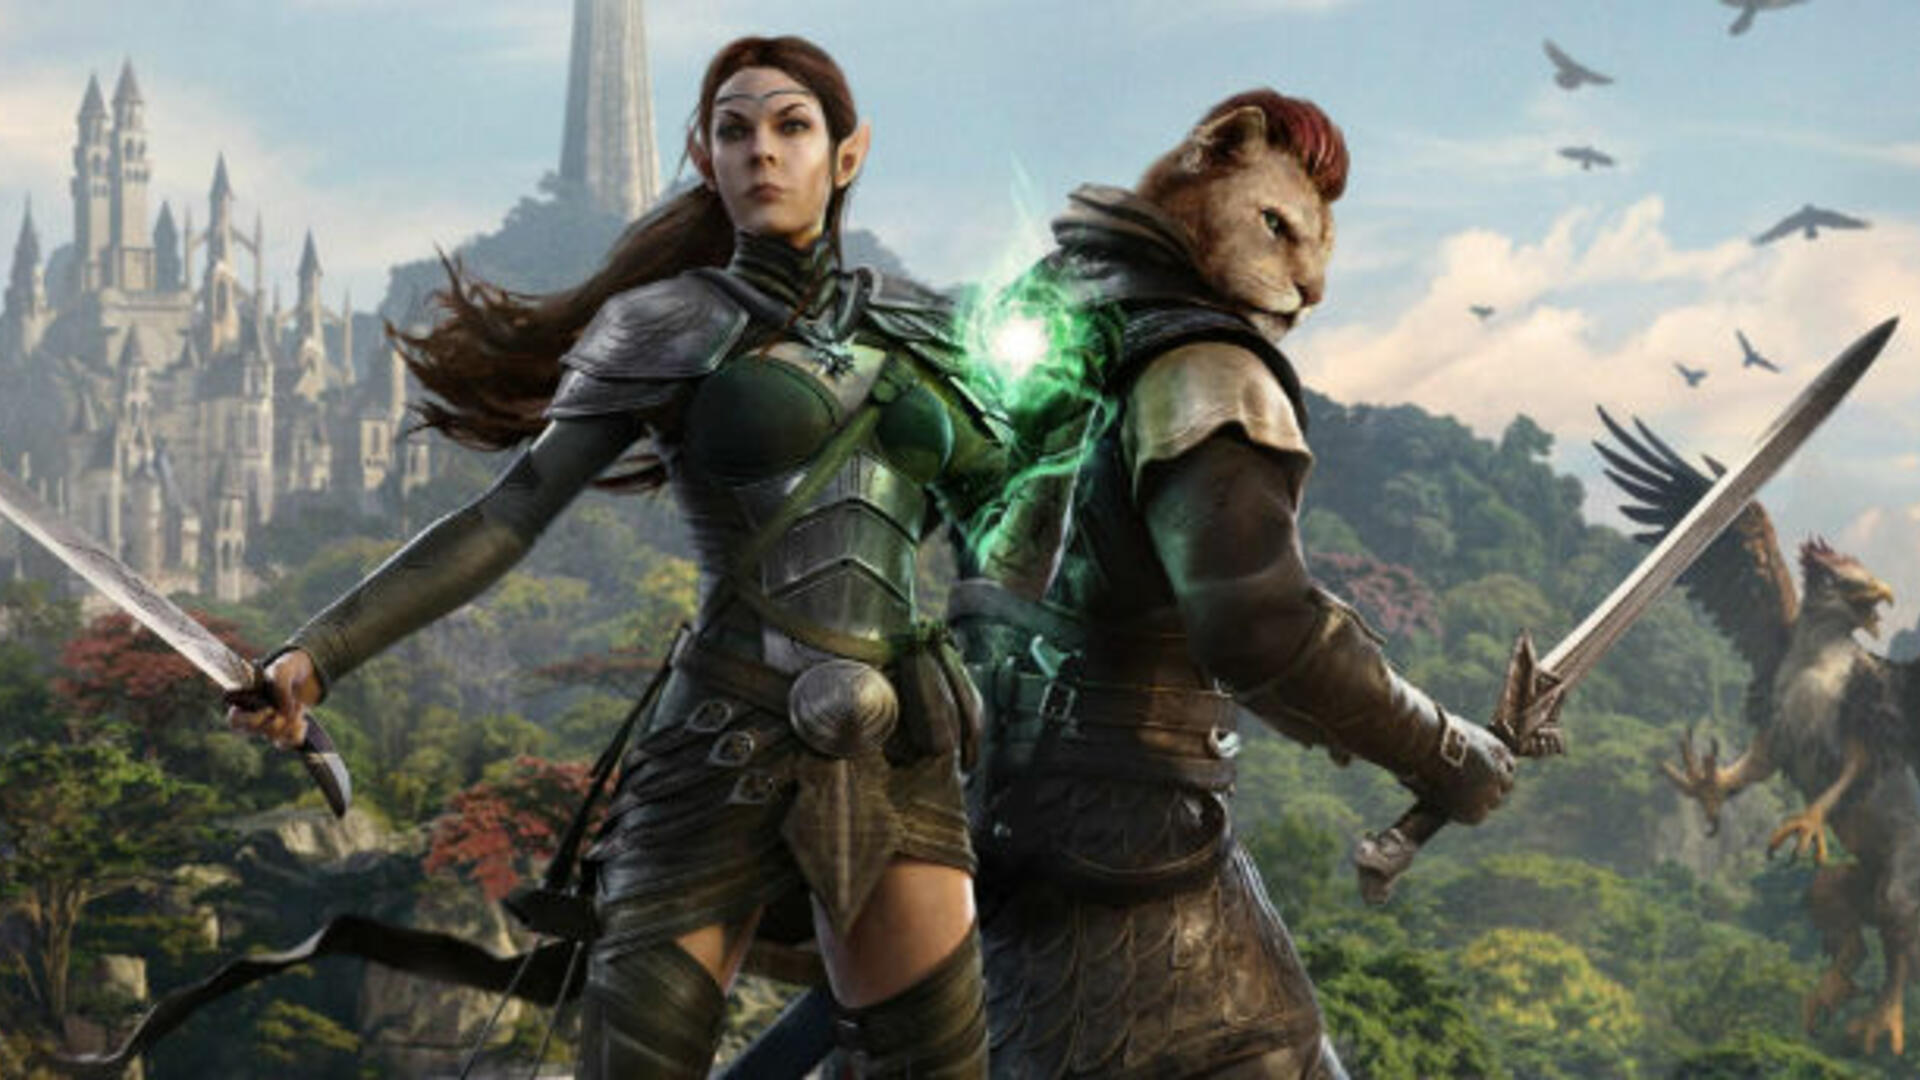 Elder Scrolls Online Summerset Skyshards Guide - How to Find All the